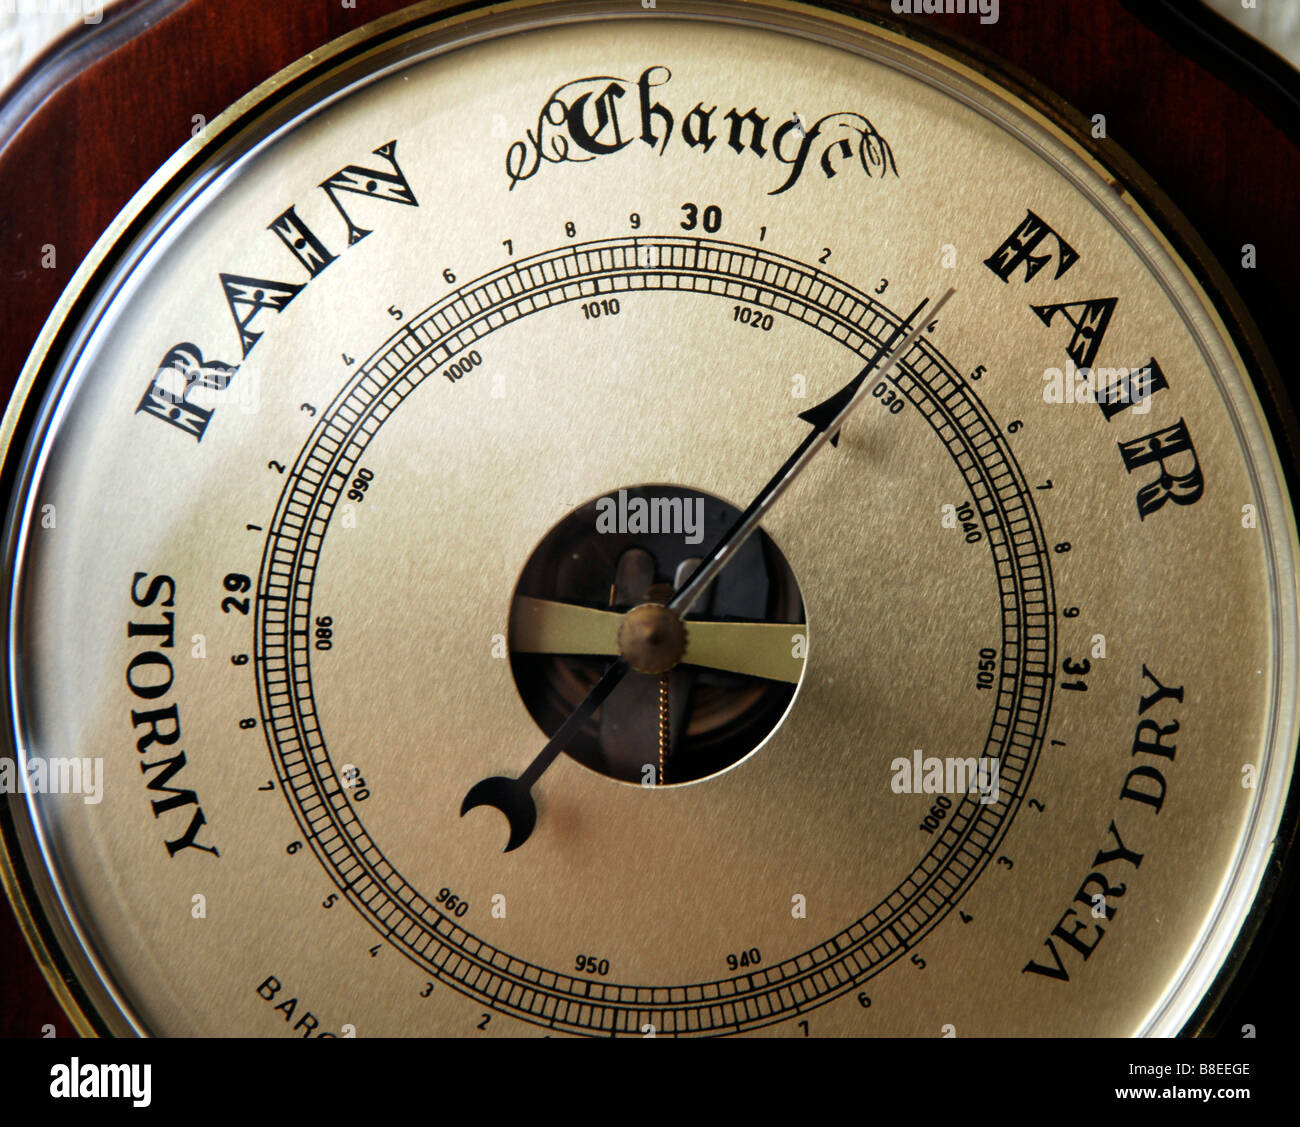 how to read changes in barometric pressure